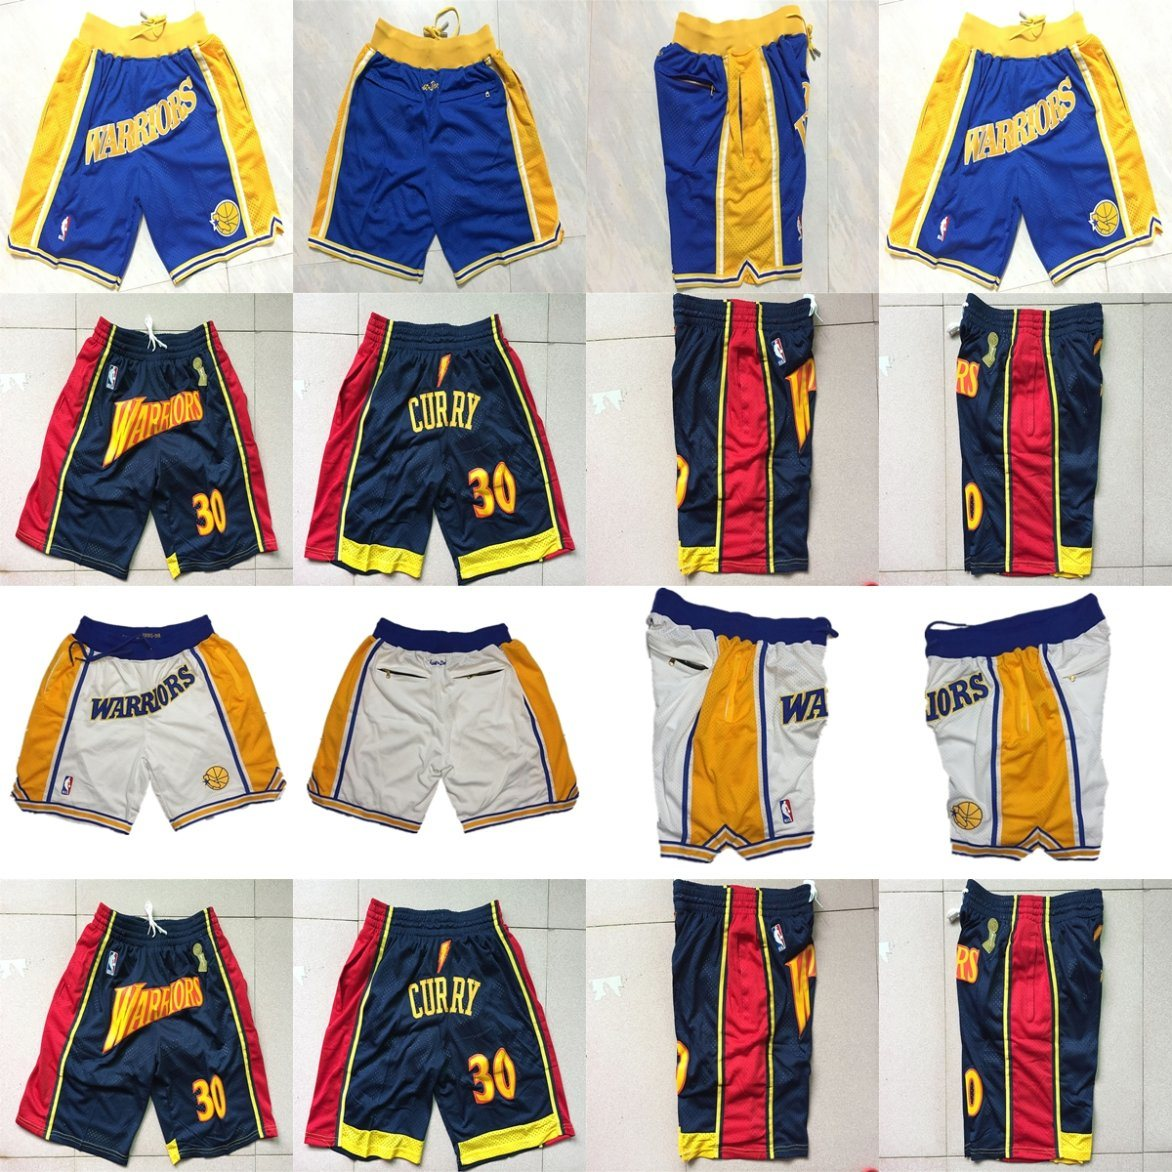 separation shoes a8705 ba4ef China Wholesale Golden State Warriors Pocket Version N-B-a ...